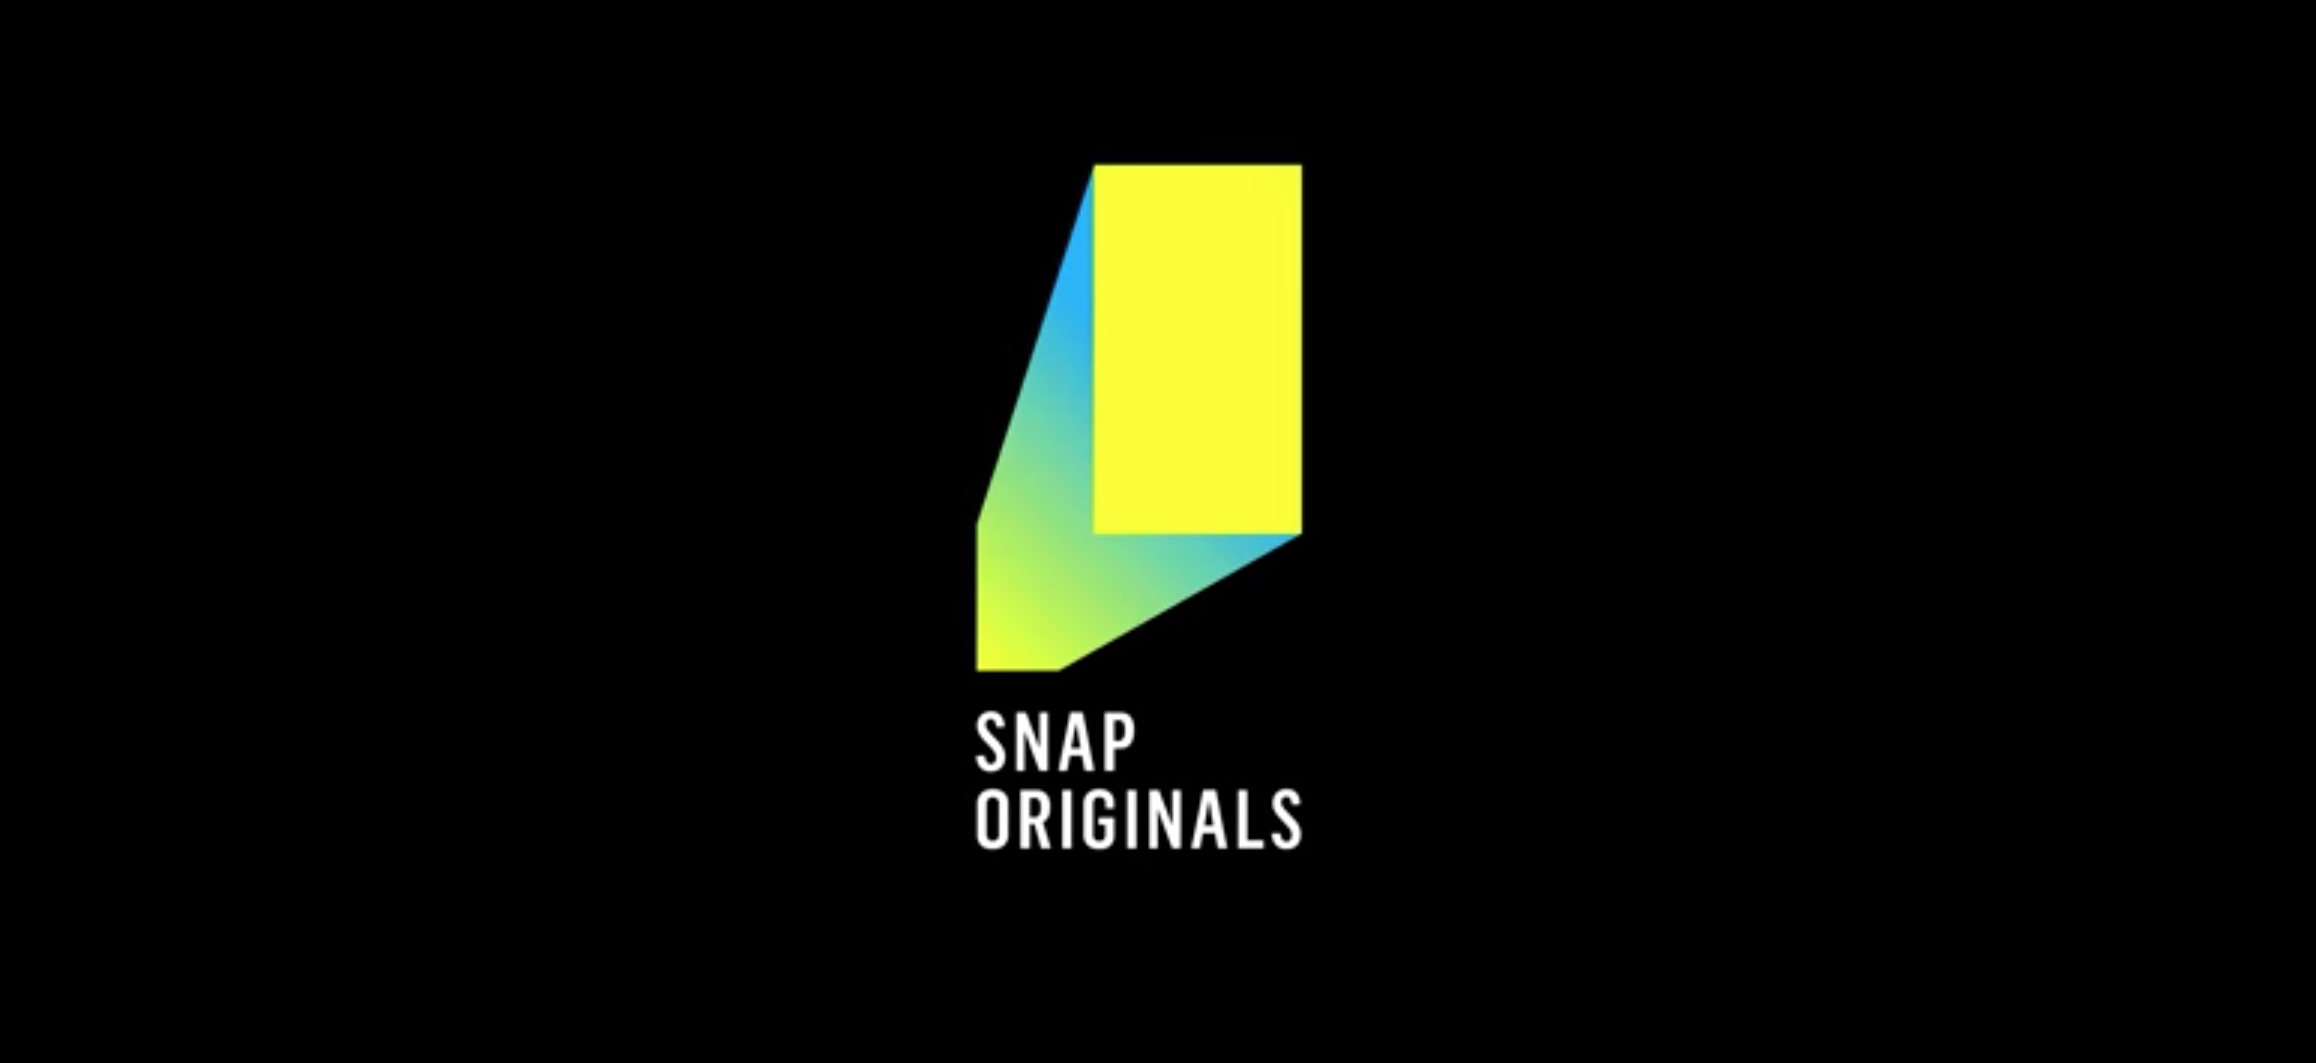 Snap Originals: A New Advertising Opportunity from Snapchat